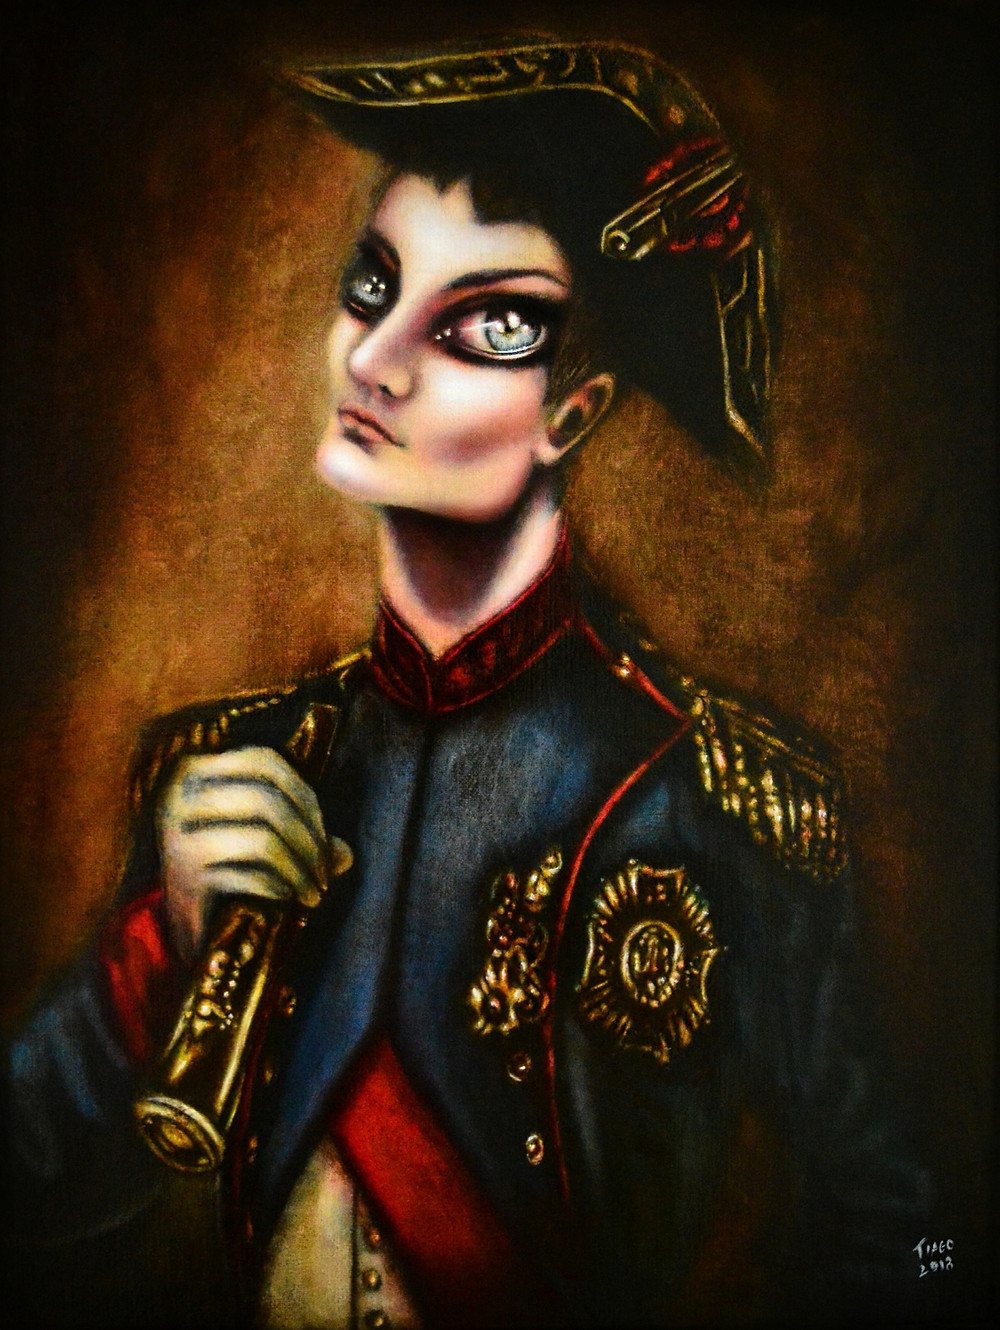 painting of napoleon with a telescope in hand and brown background by tiago azevedo a lowbrow pop surrealism artist